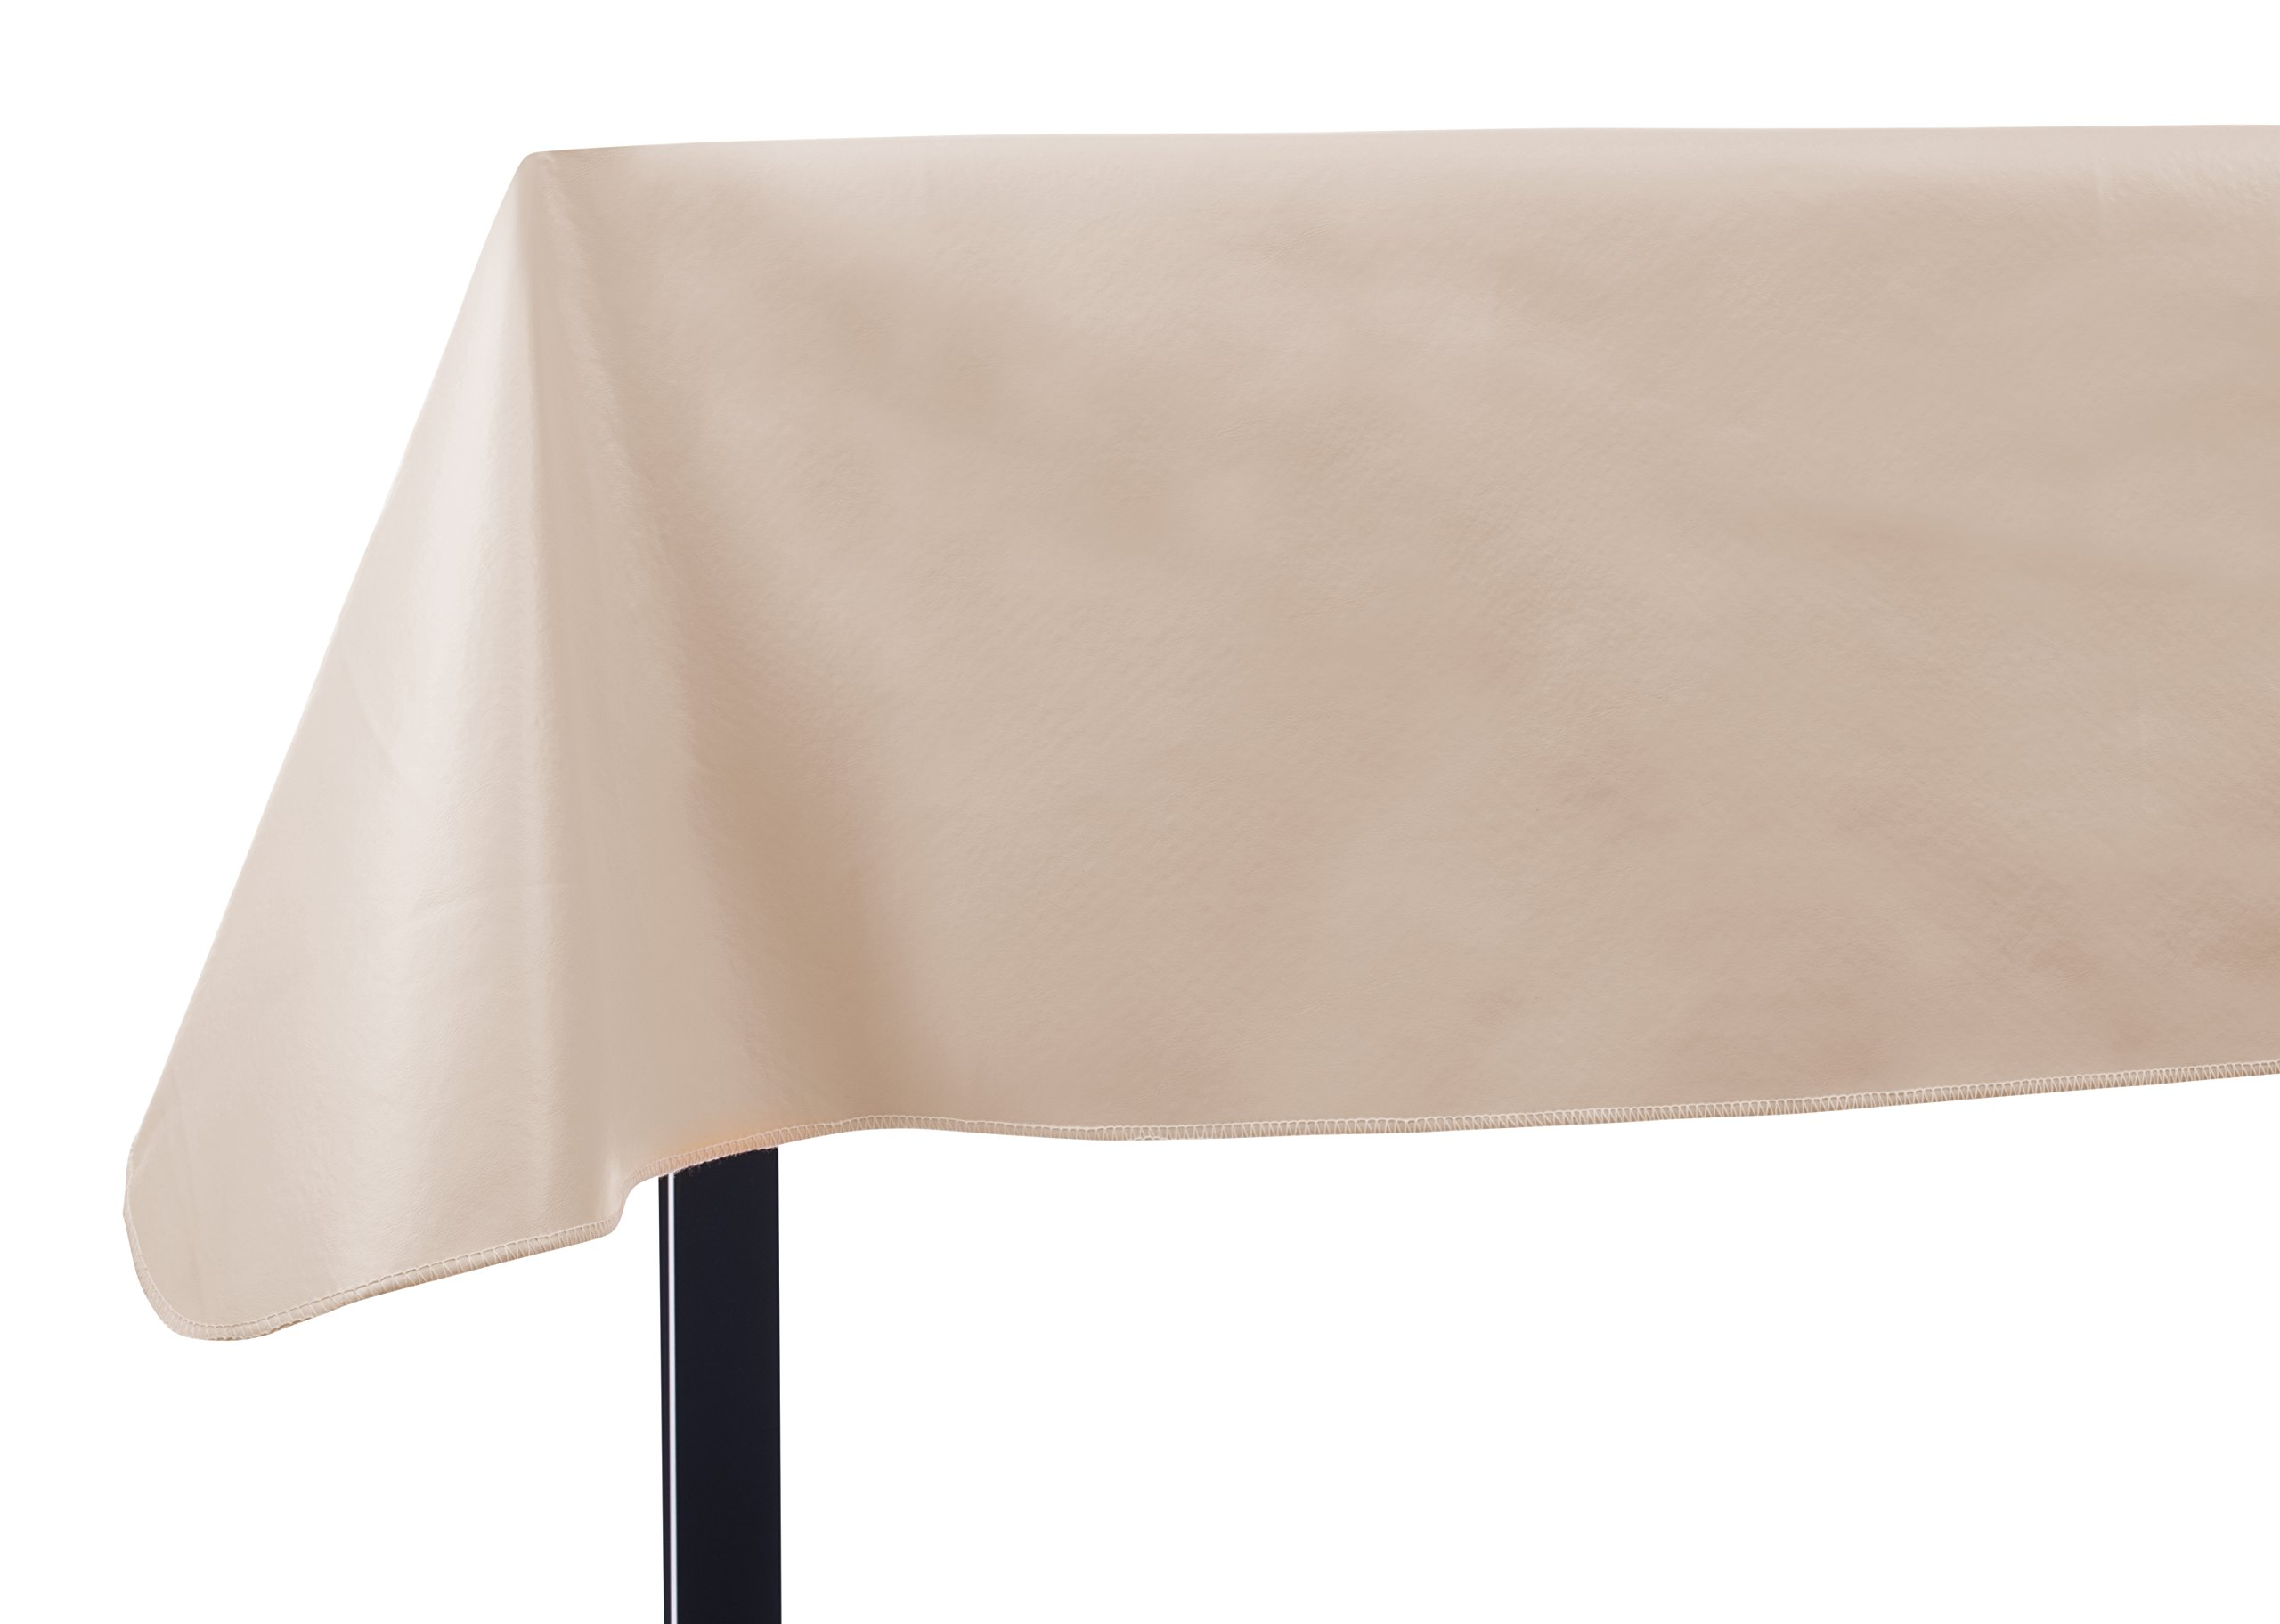 Yourtablecloth Heavy Duty Vinyl Rectangle or Square Tablecloth – 6 Gauge Heavy Duty Tablecloth – Flannel Backed – Wipeable Tablecloth with Vivid Colors & Many Sizes 52 x 70 Sand